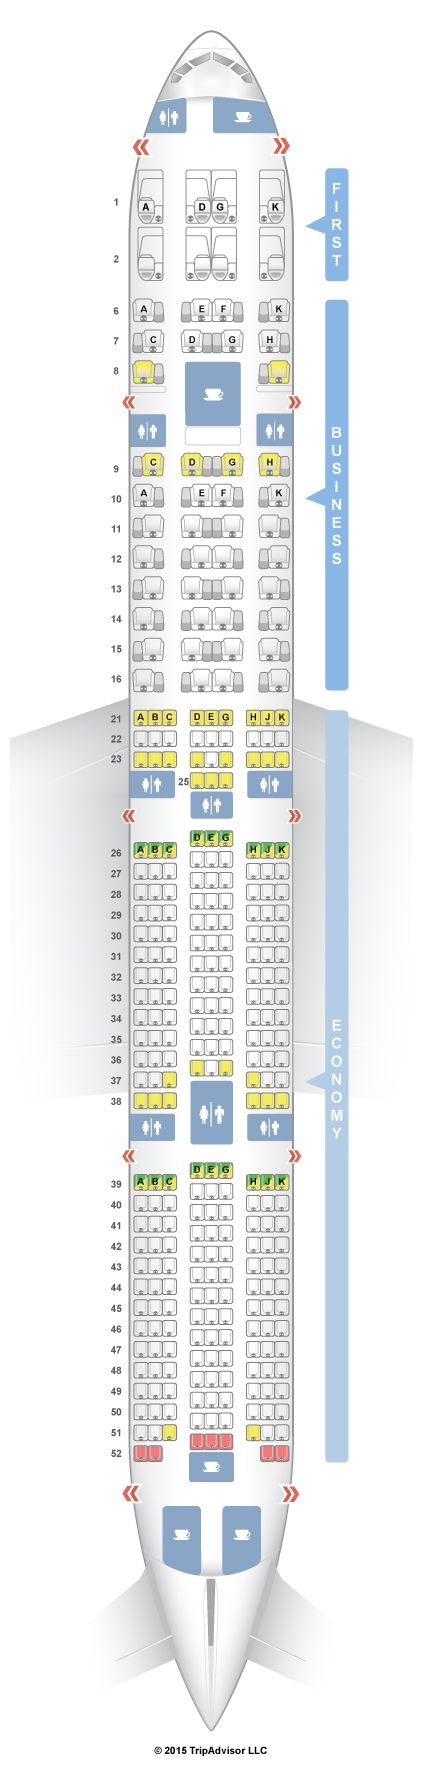 SeatGuru Seat Map Garuda Indonesia Boeing 777-300ER (77W)